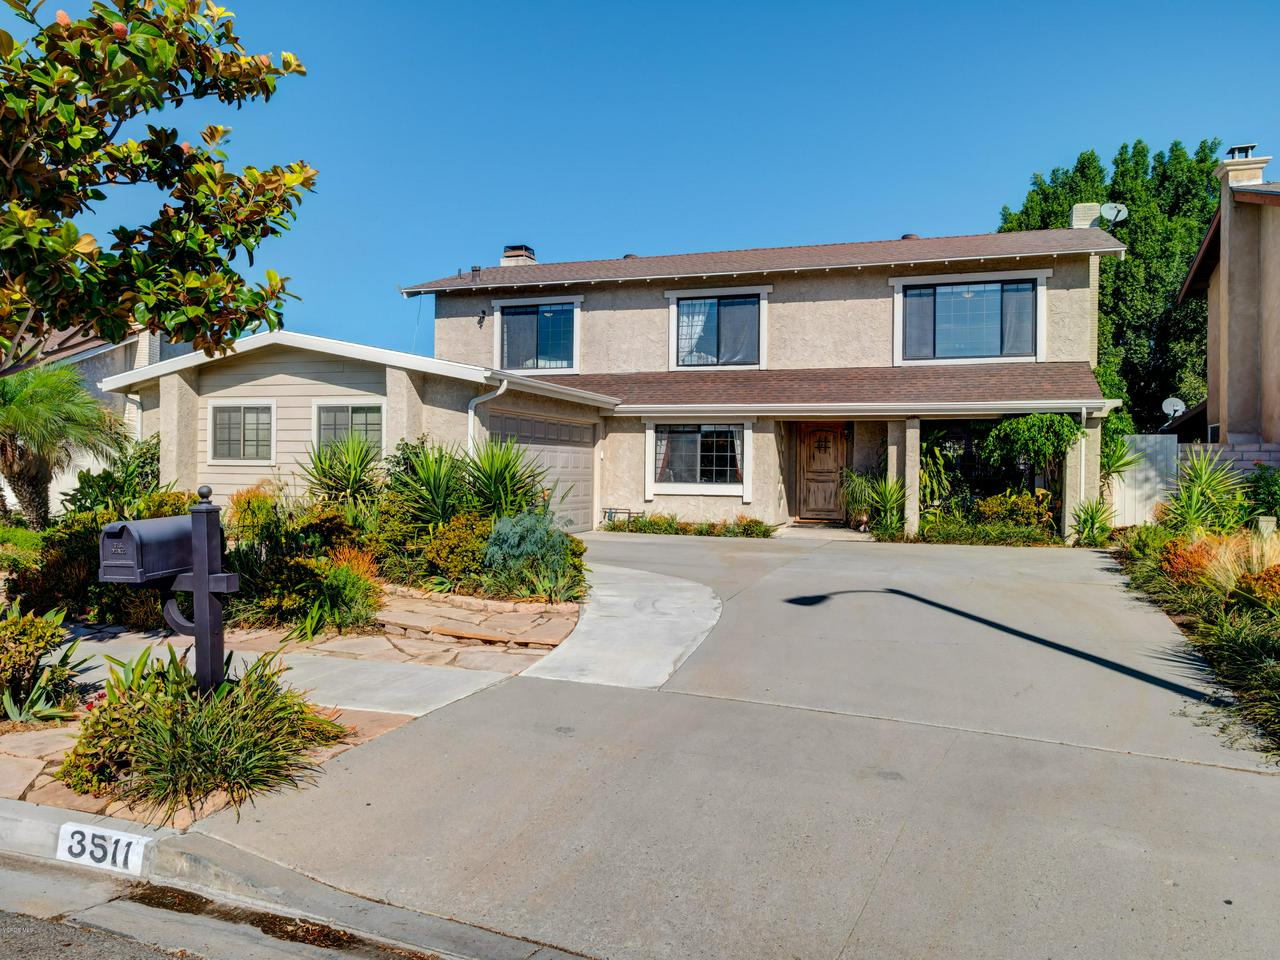 3511 SWEETWOOD, Simi Valley, CA 93063 - 1000-Exterior Front